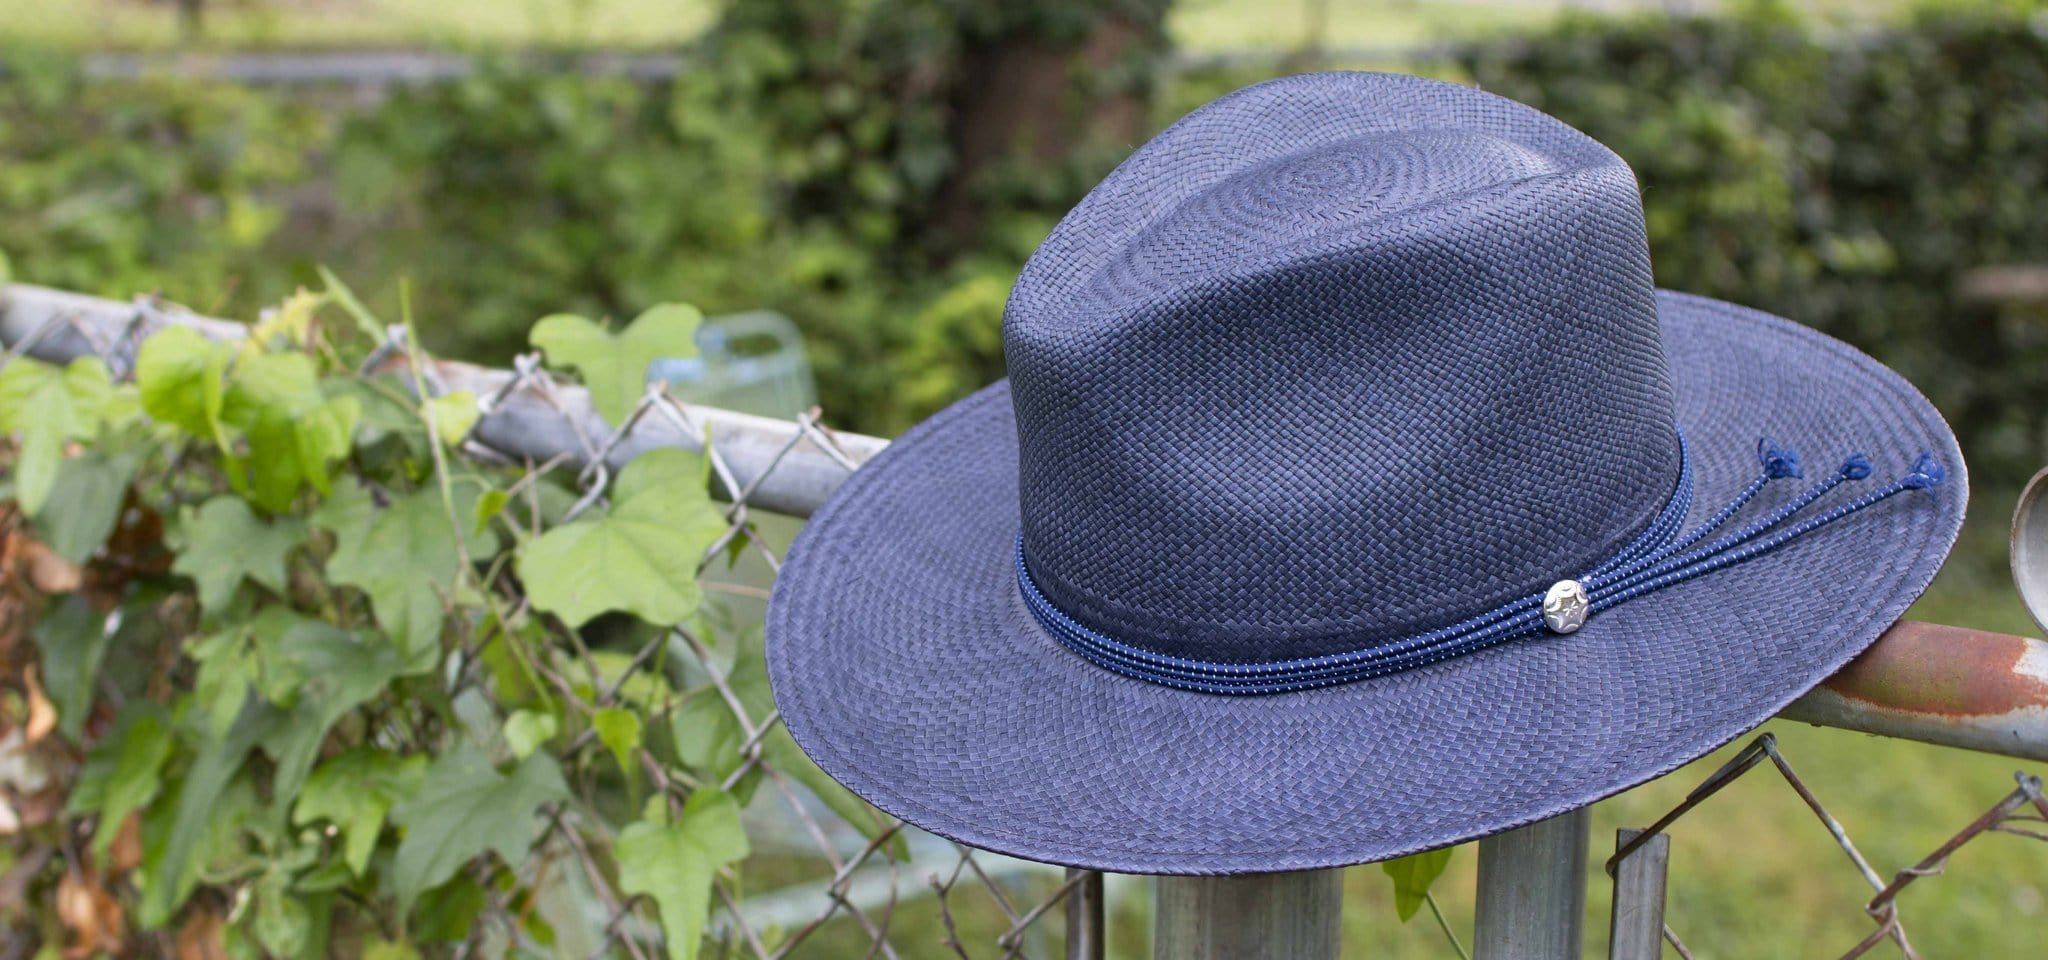 79b742f77c9 The Straw Collection. At Jj Hat Center. SHOP